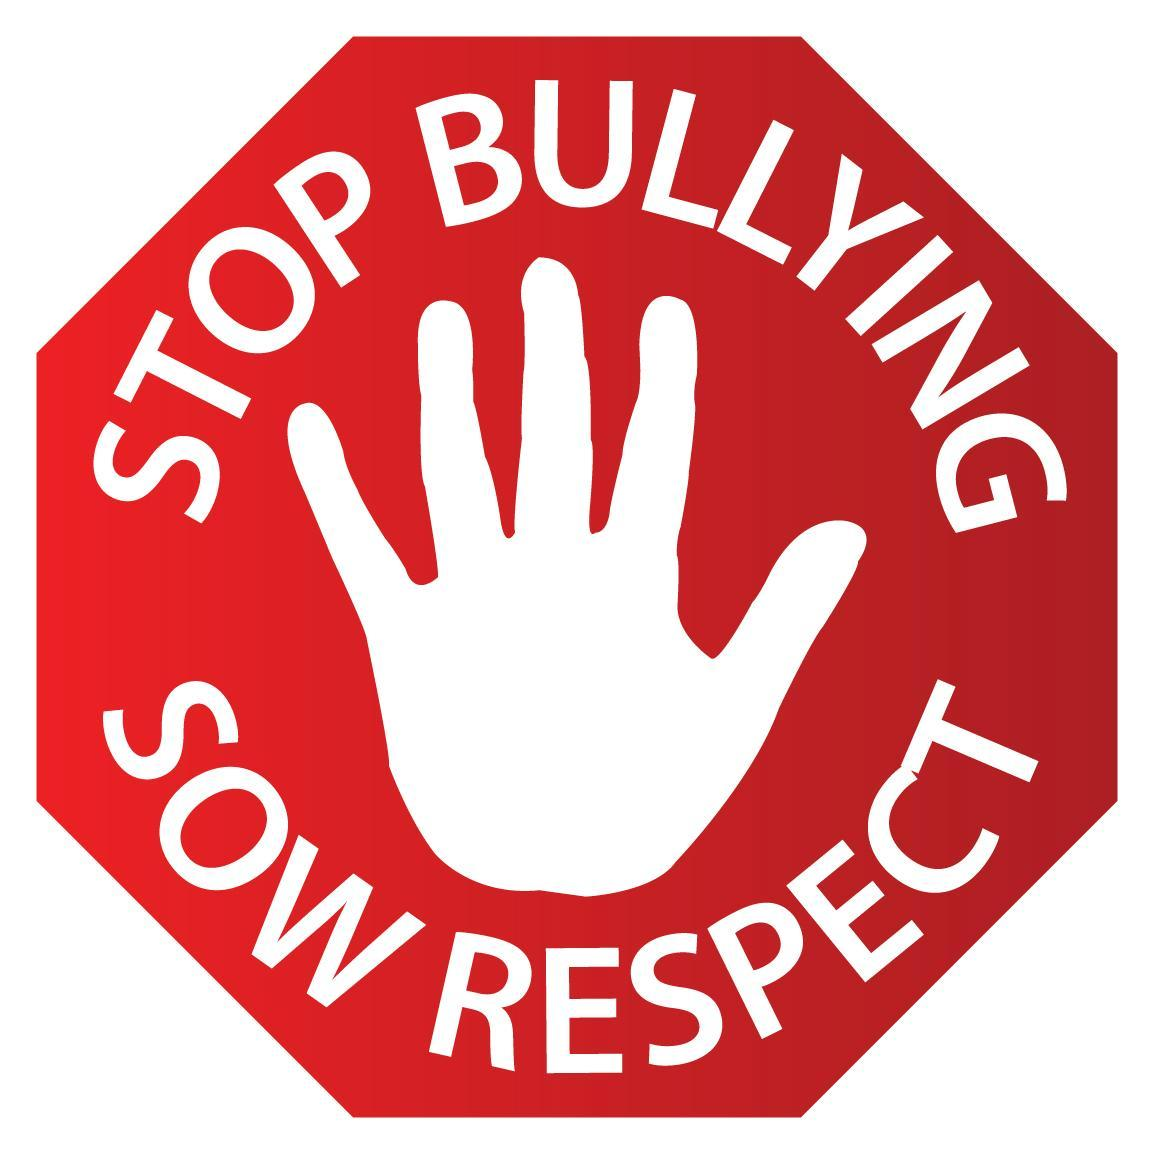 Your friend is being bullied. How do you react?